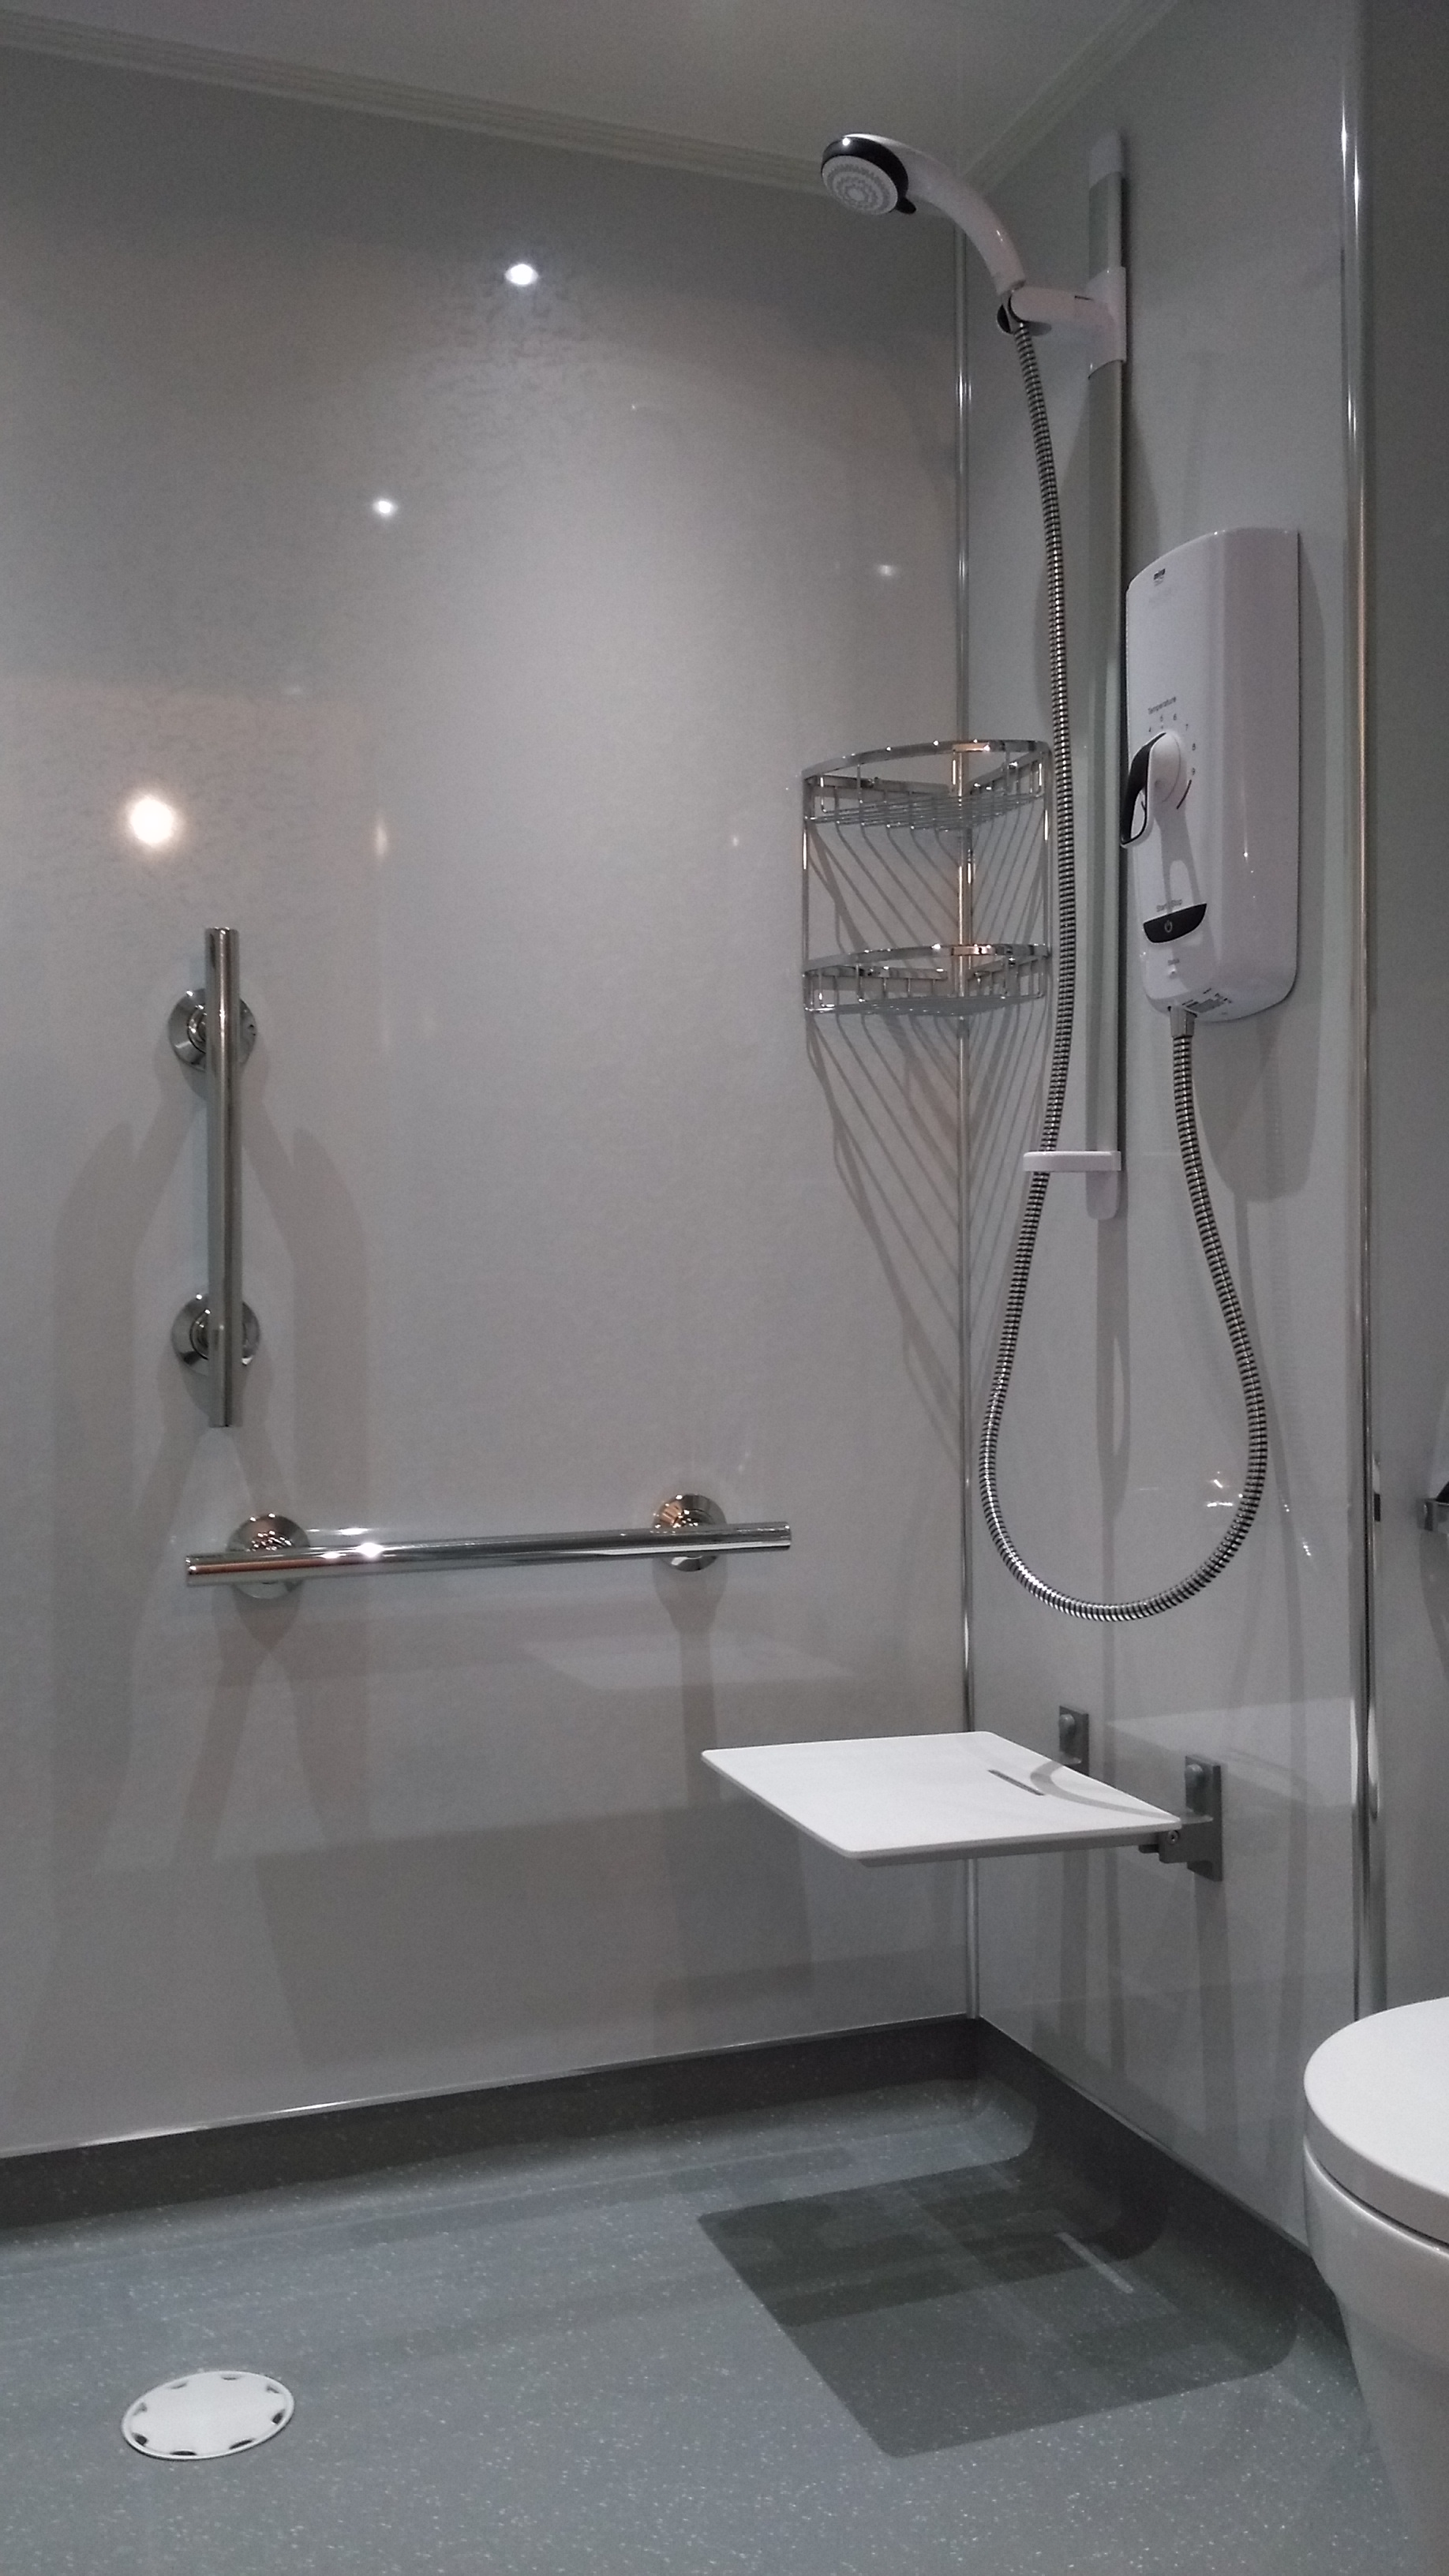 Accessible Shower with seat and handrails